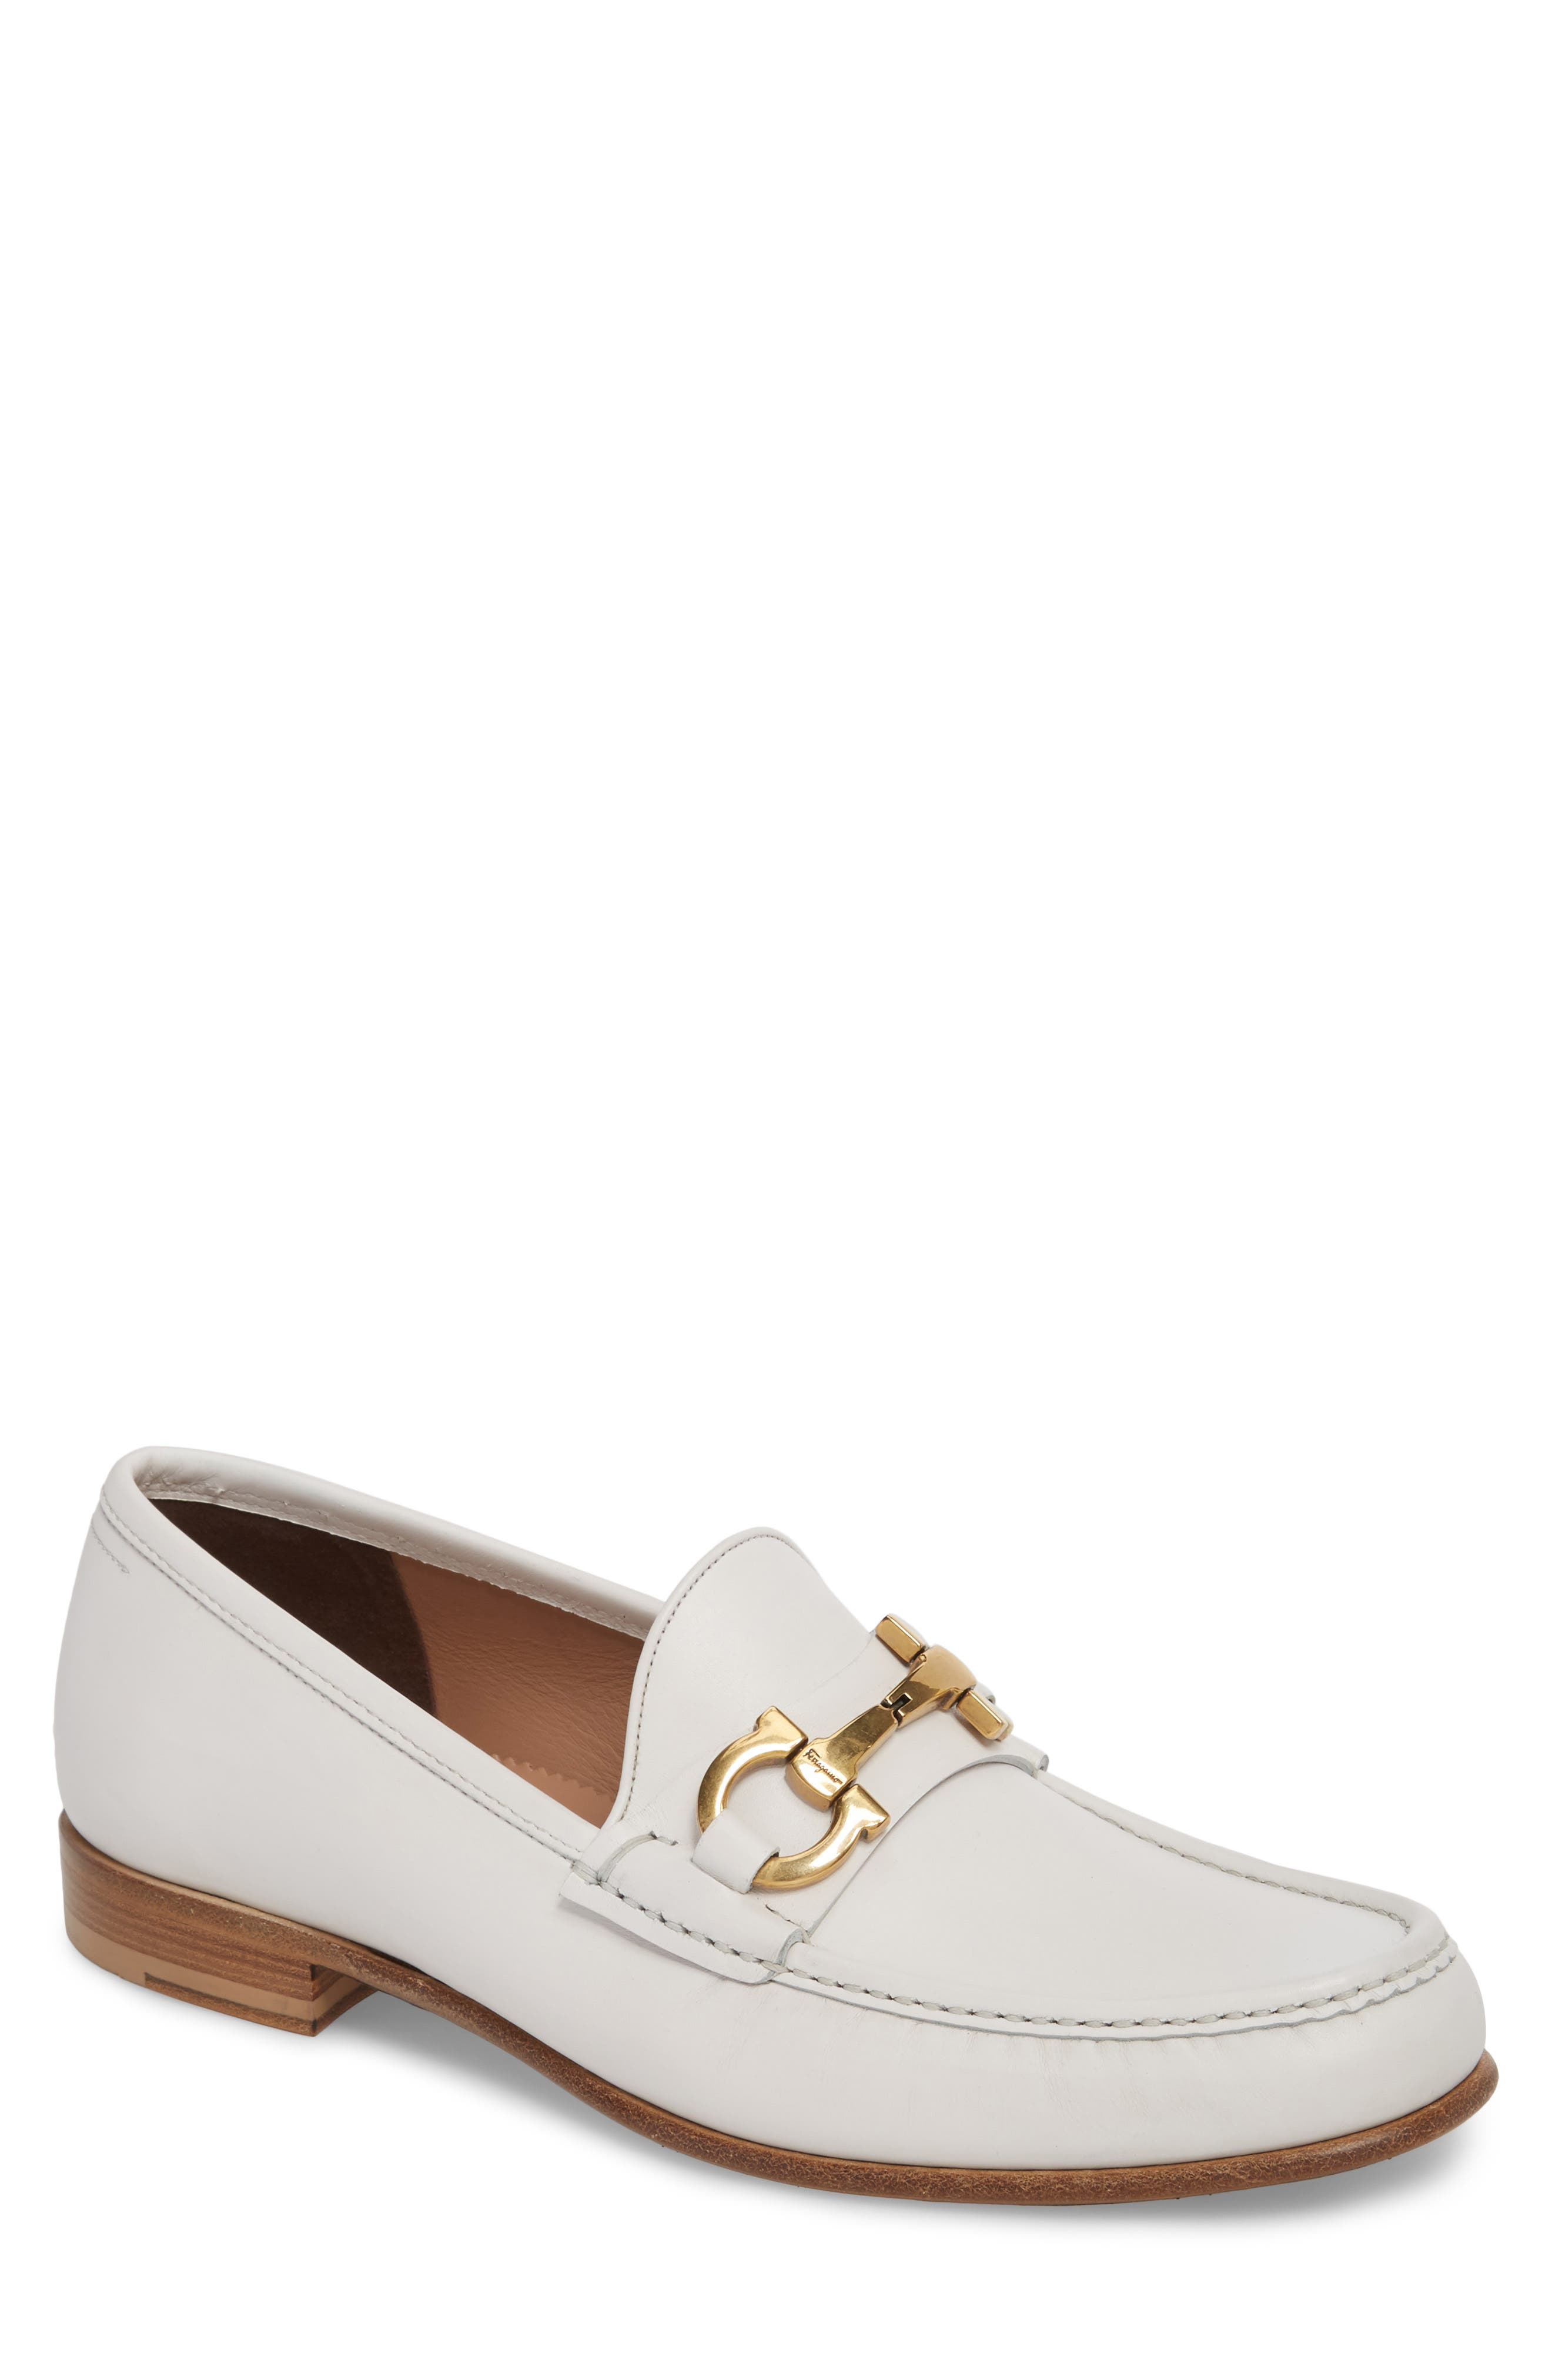 Bond Bitted Moc Loafer,                             Main thumbnail 1, color,                             BIANCO LEATHER